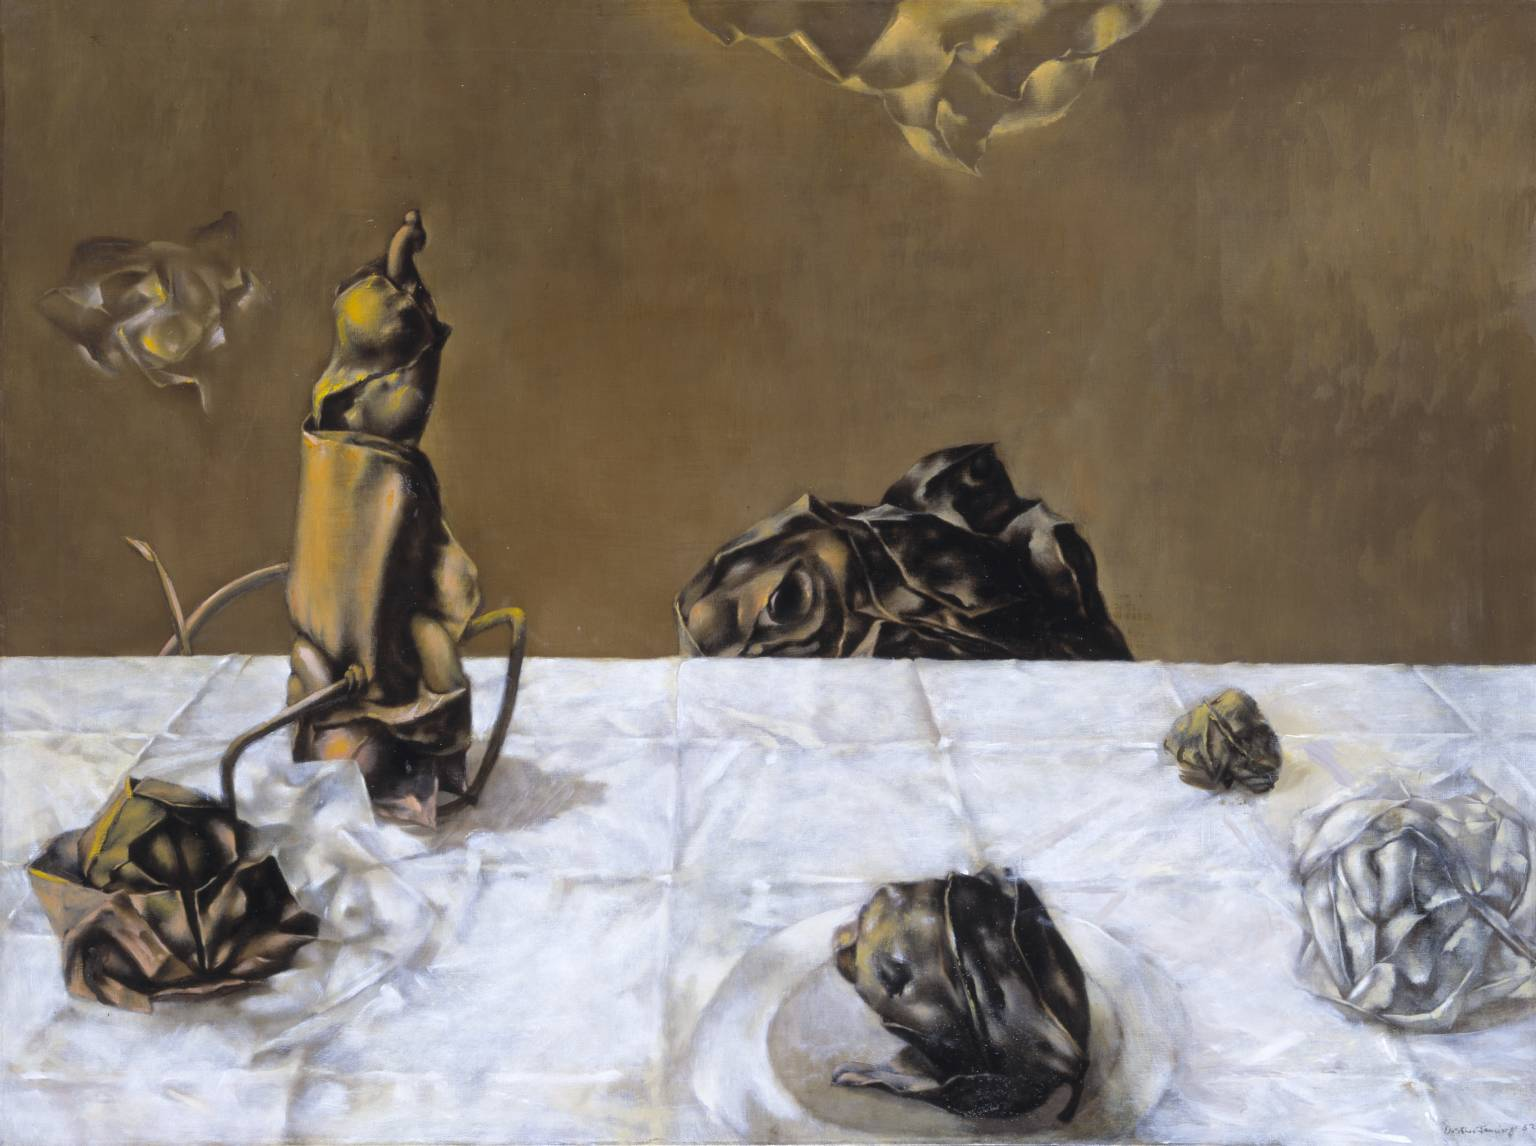 Dorothea Tanning: Some Roses and Their Phantoms (1952) © The Estate of Dorothea Tanning | Image from Tate Gallery (fair use)